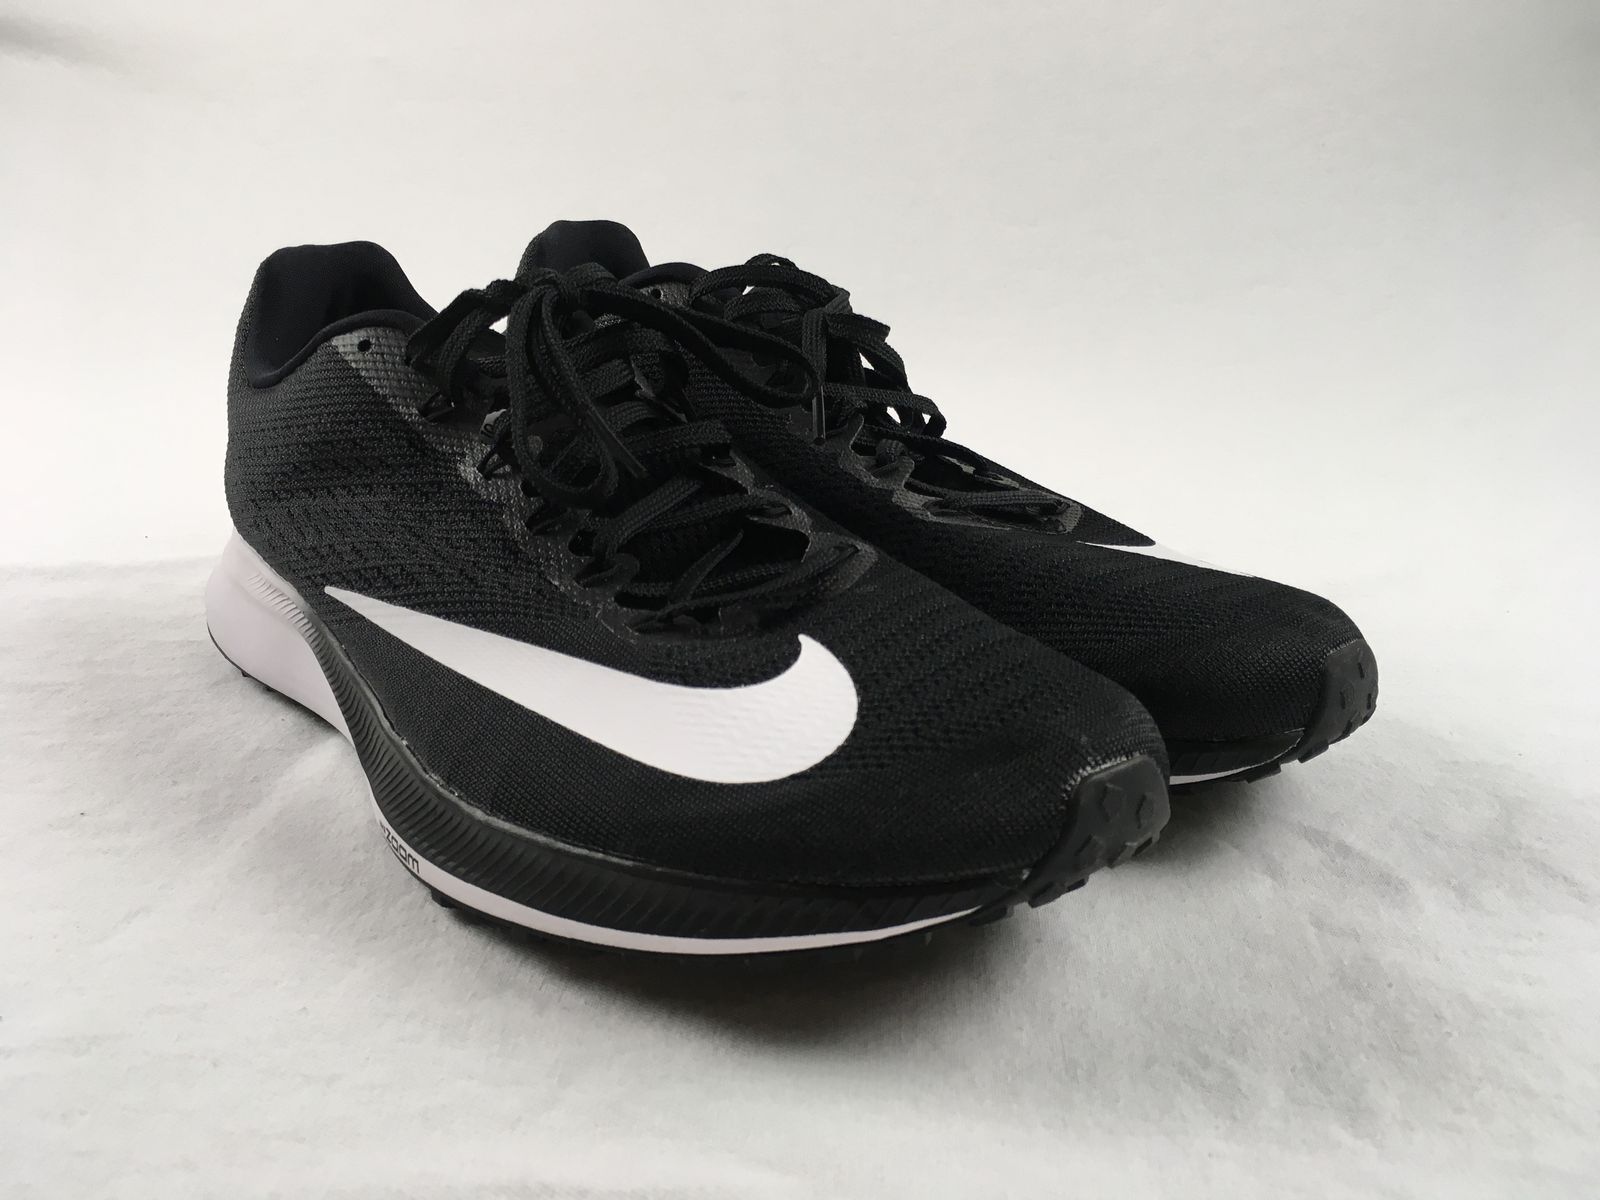 NEW Nike Nike Zoom Elite - Black Running, Cross Training (Men's 11)